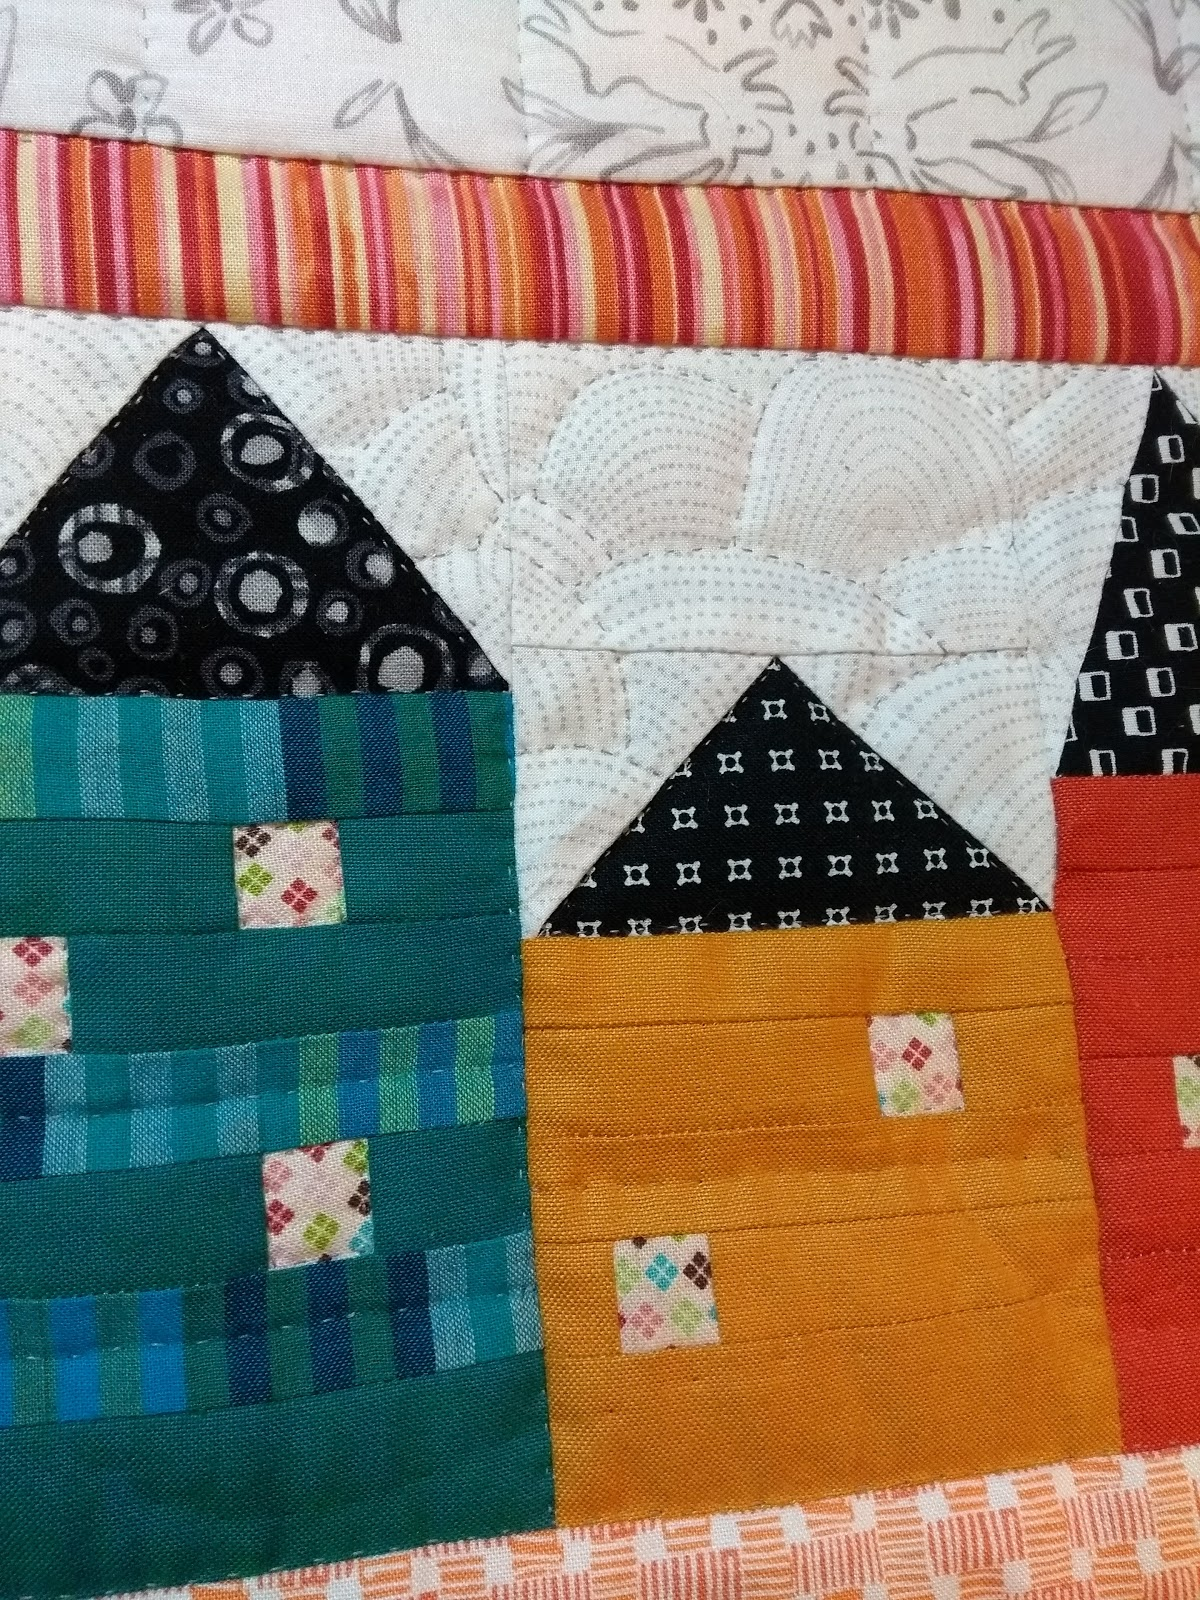 Quilting at the Cro s Nest Down the Rabbit Hole a real quilt